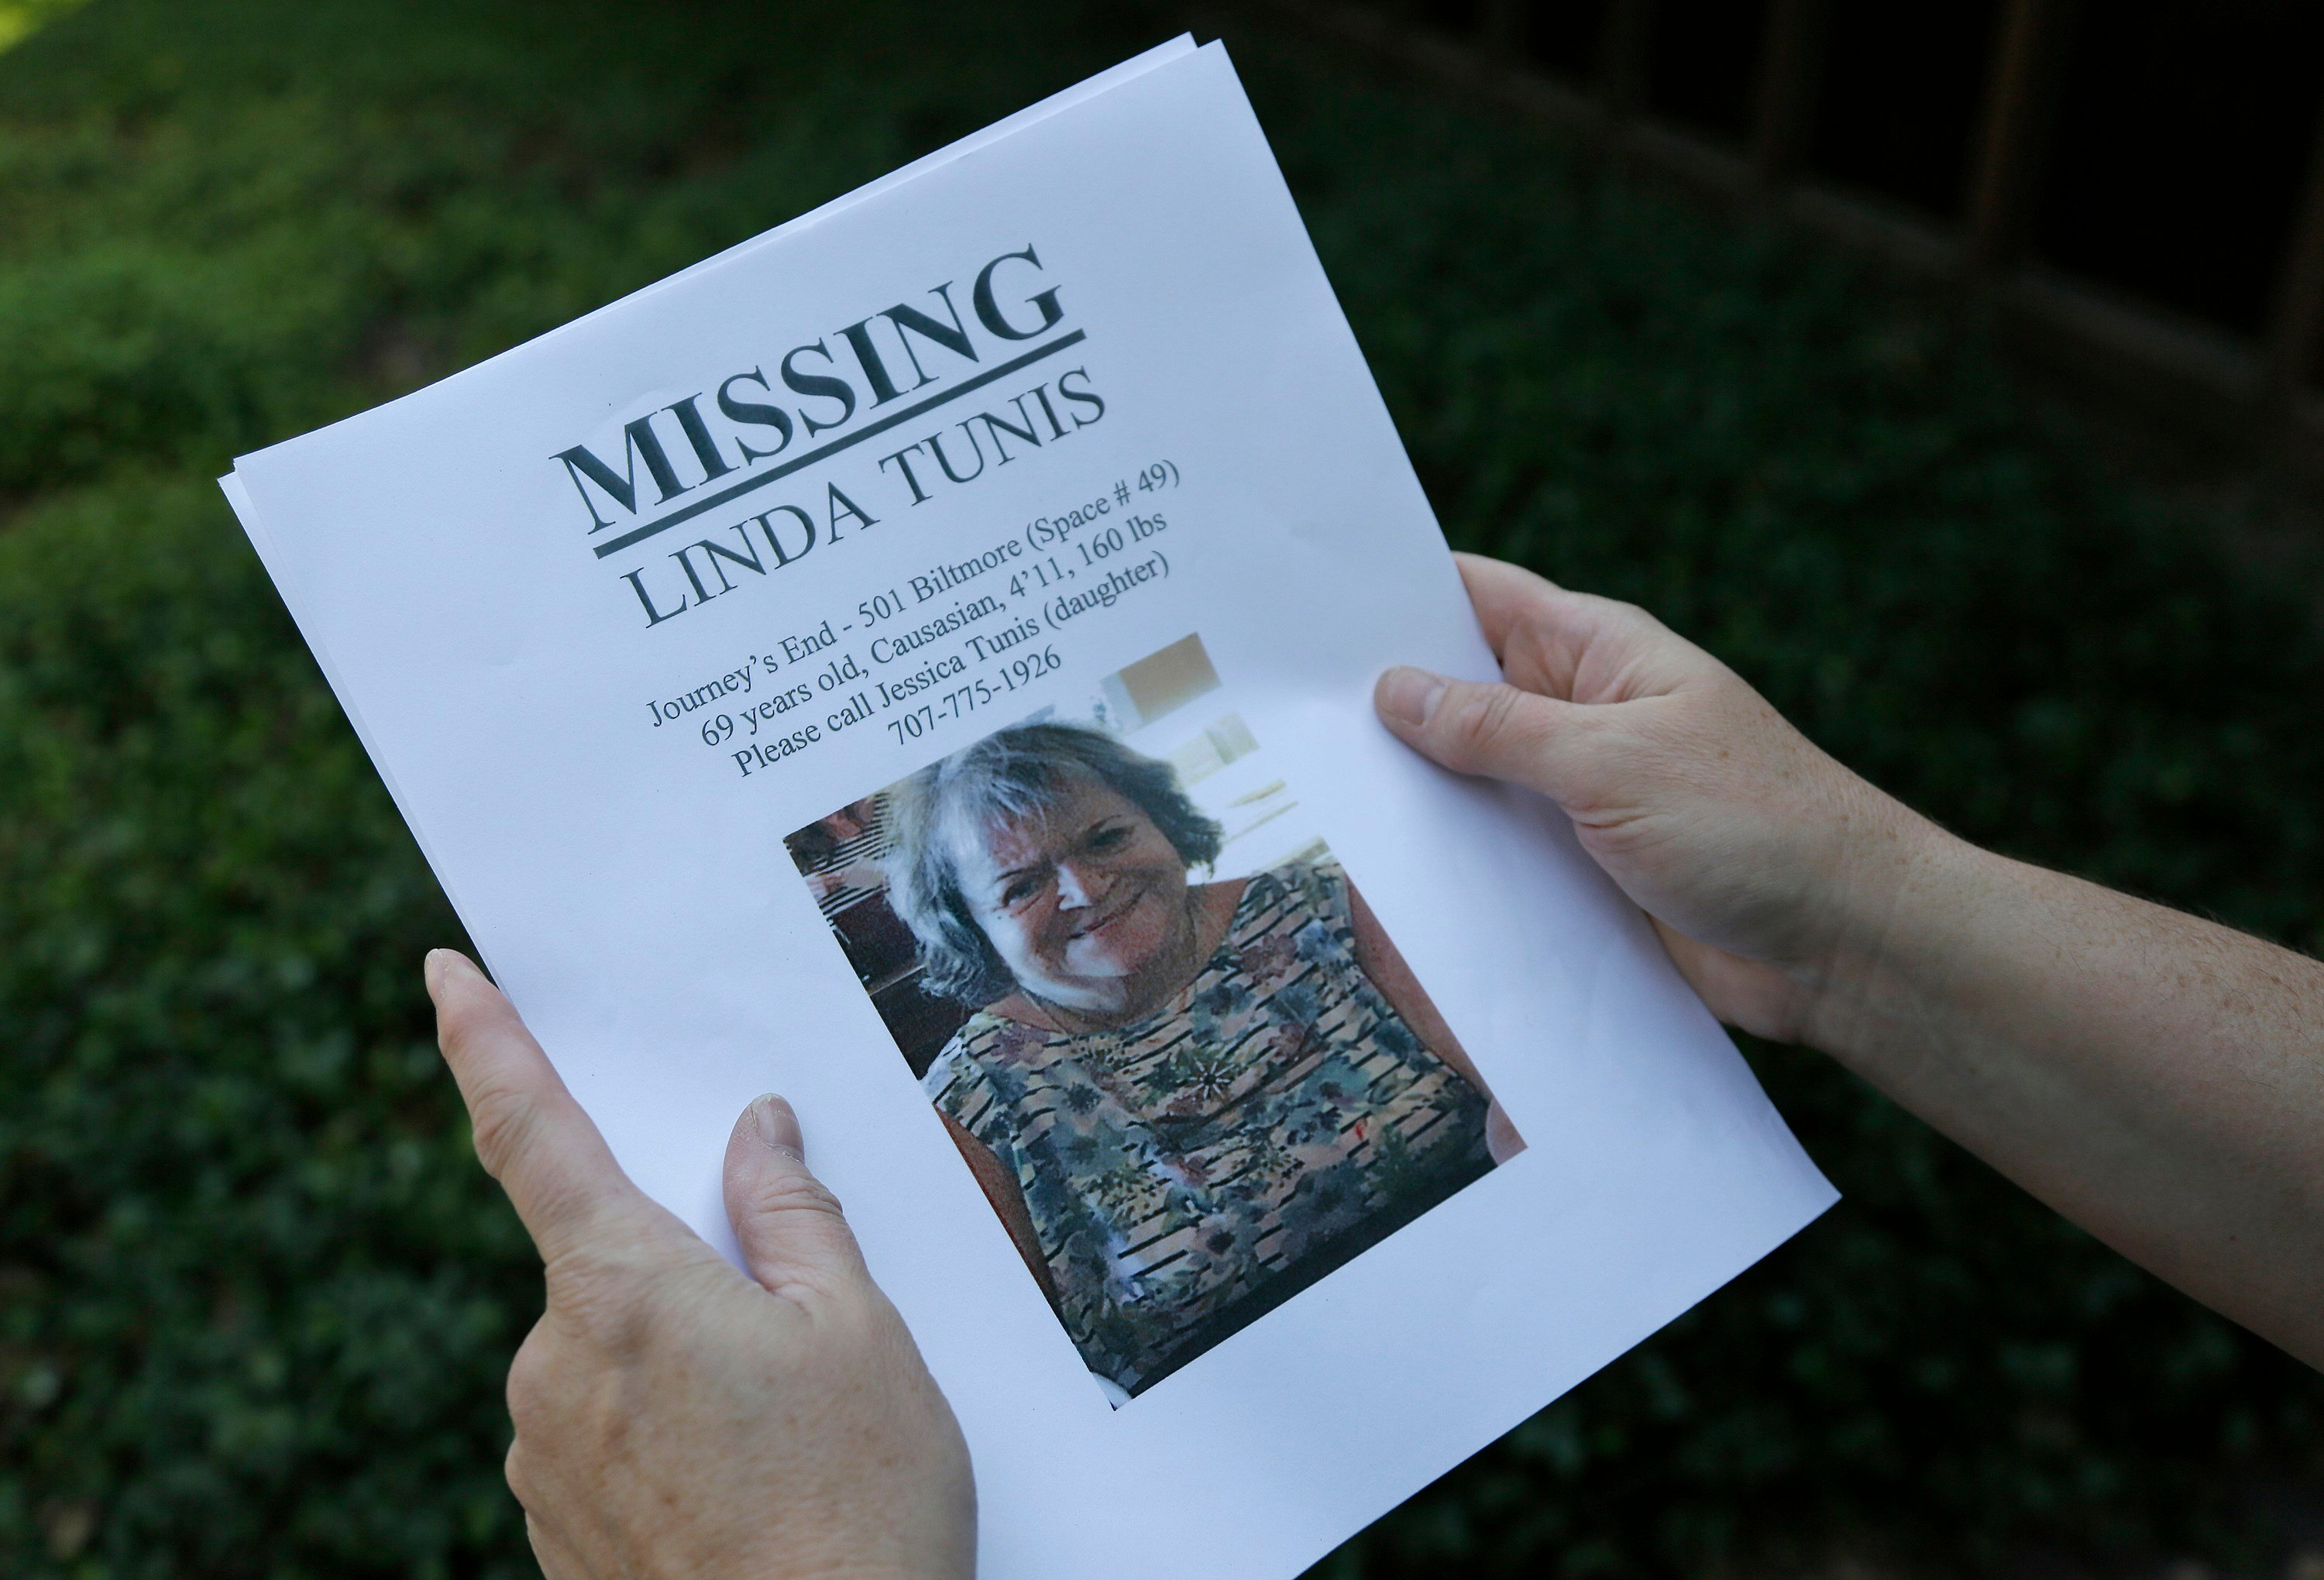 Jessica Tunis stands outside a Red Cross evacuation center and holds a flyer about her missing mother Wednesday, Oct. 11, 2017, in Santa Rosa, Calif. Tunis is searching for her missing mother, Linda Tunis, who was living at a mobile home park when wildfir